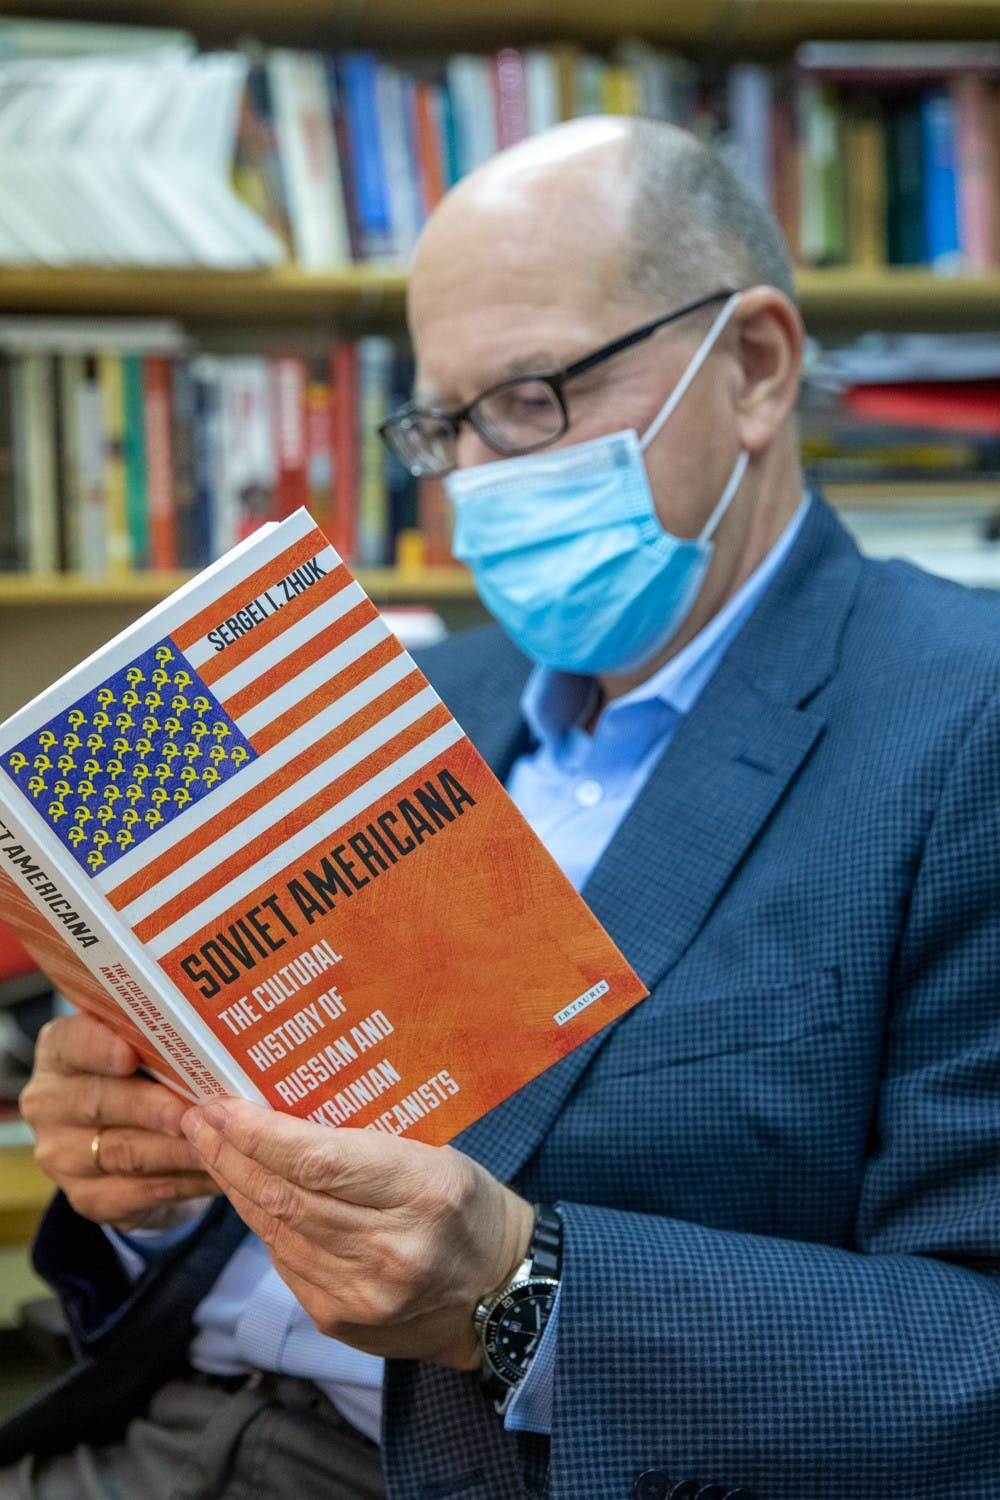 <p>Sergei Zhuk, professor of history, poses for a photo Oct. 6, 2020, in the Burkhardt Building. Zhuk came to the United States in 1997 after leaving the Soviet Union. <strong>Jacob Musselman, DN</strong></p>